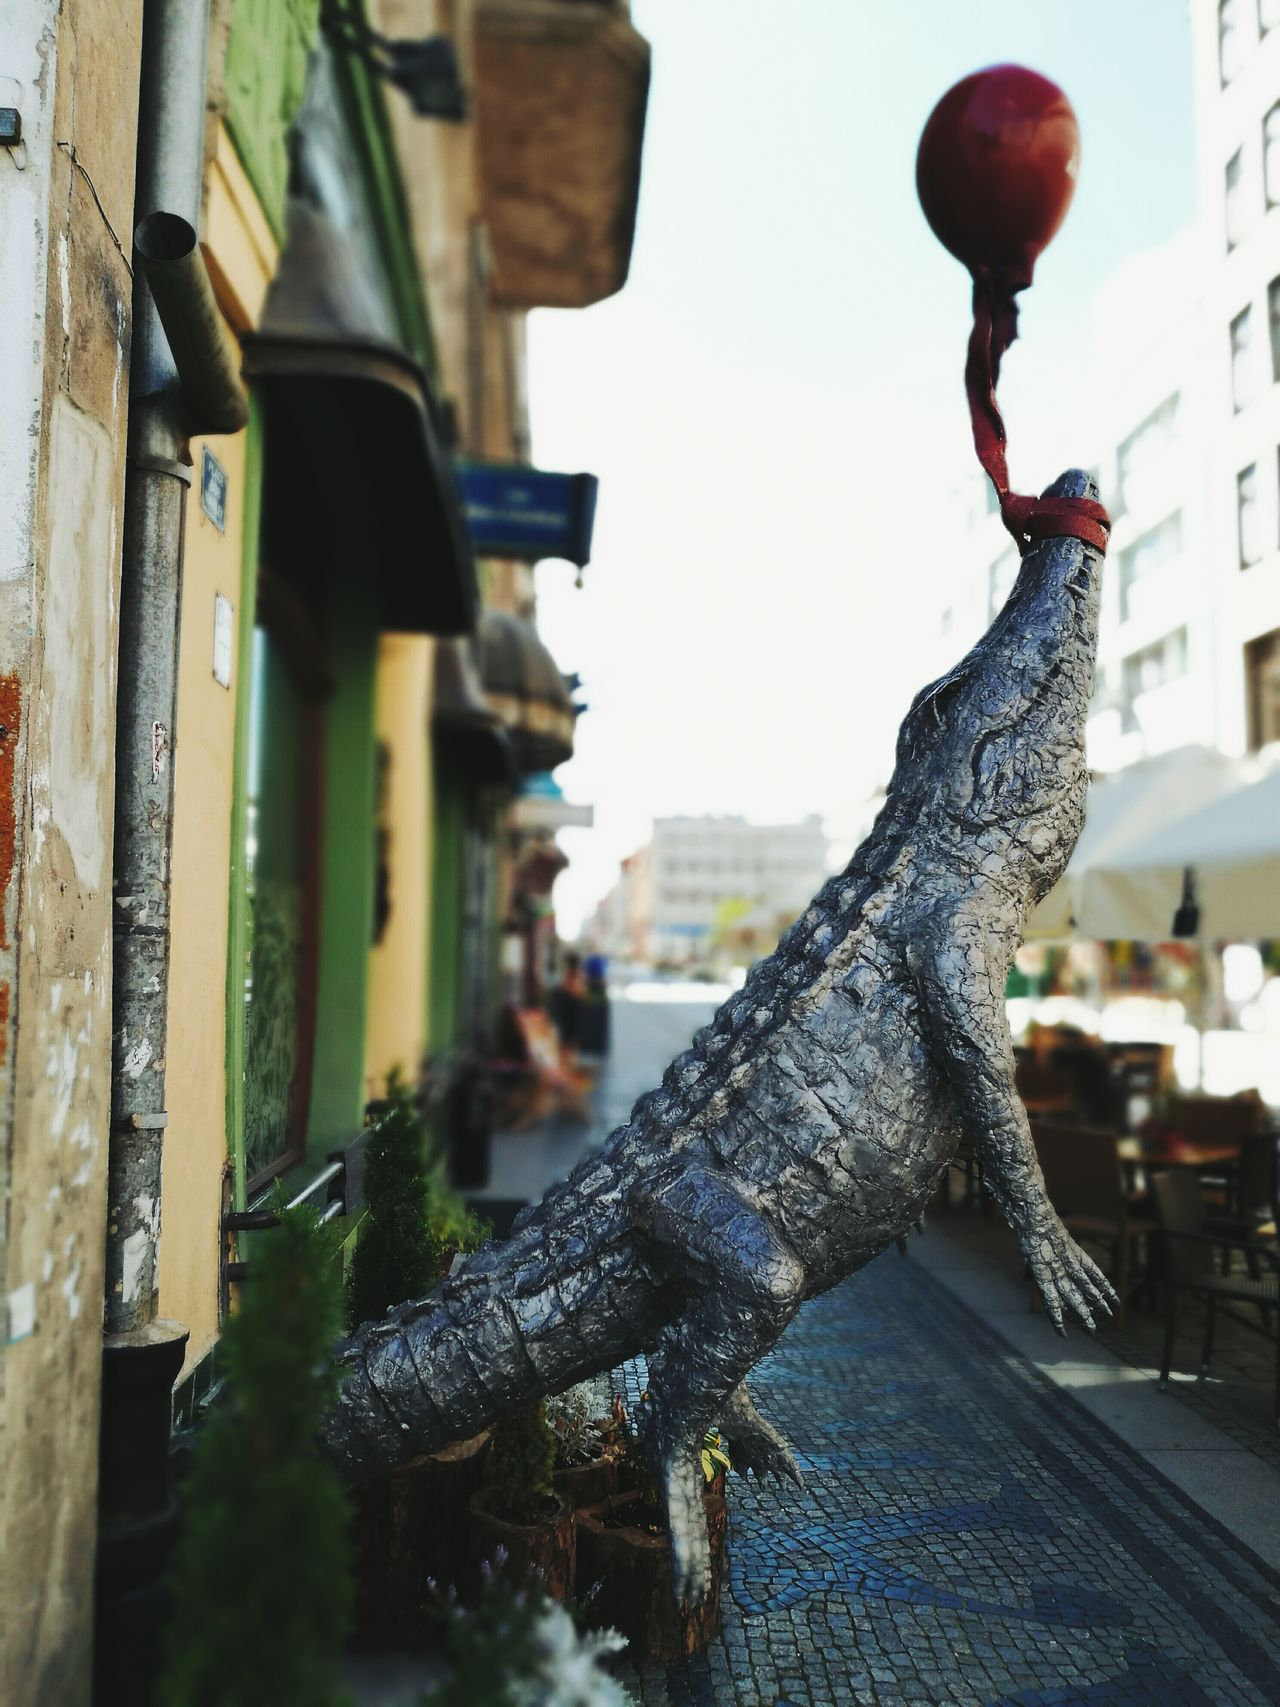 Flying High City Life Outdoors Still Life Taking Photos HuaweiP9 Vscocam VSCO Mobilephotography Eye4photography  Street Streetphotography City Travel Travel Destinations Street Photography Urban Exploration